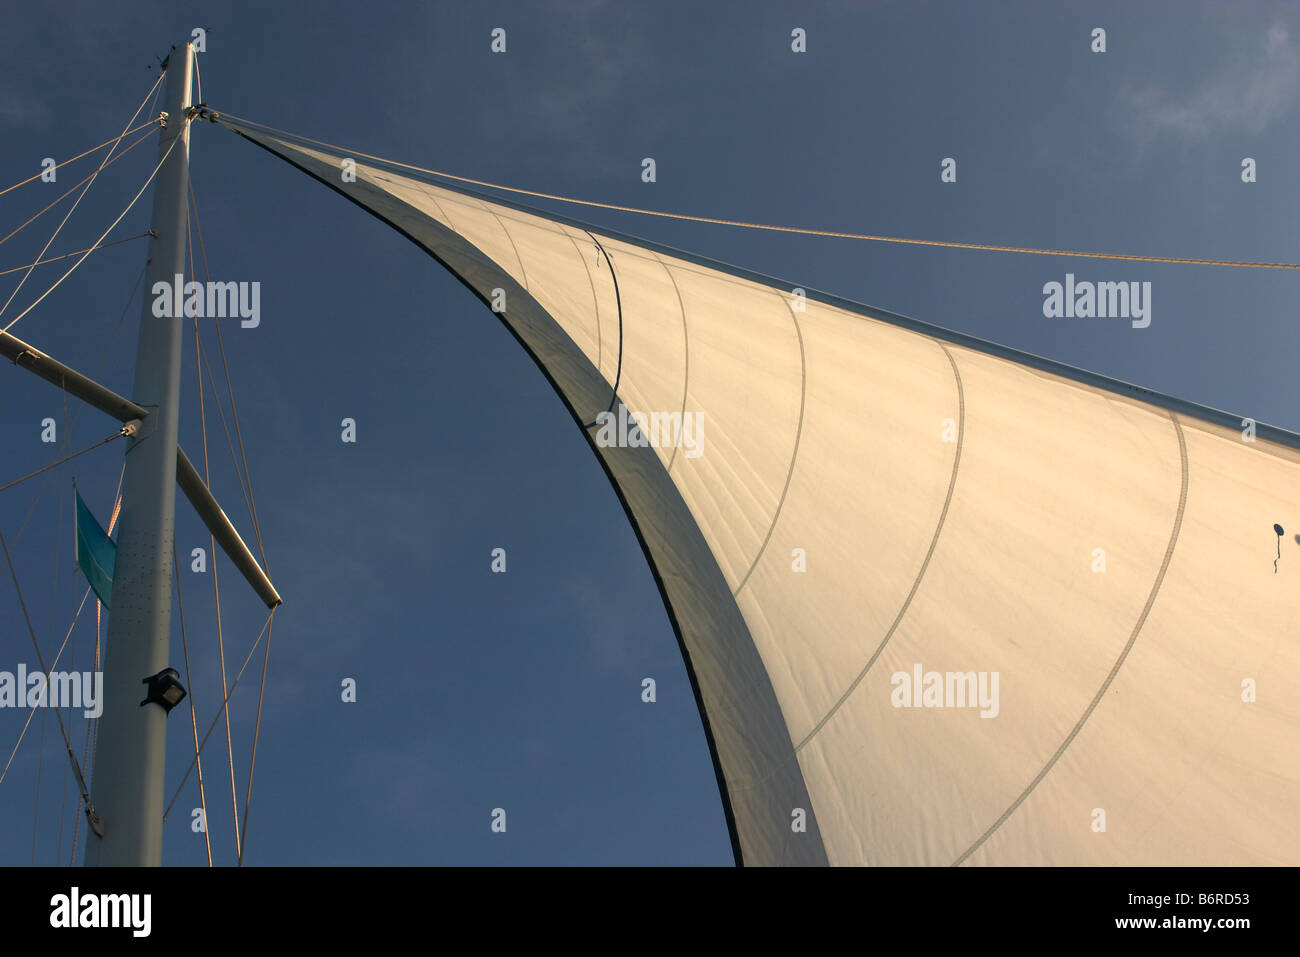 mast with cream white sail with rigging and a blue sky background - Stock Image